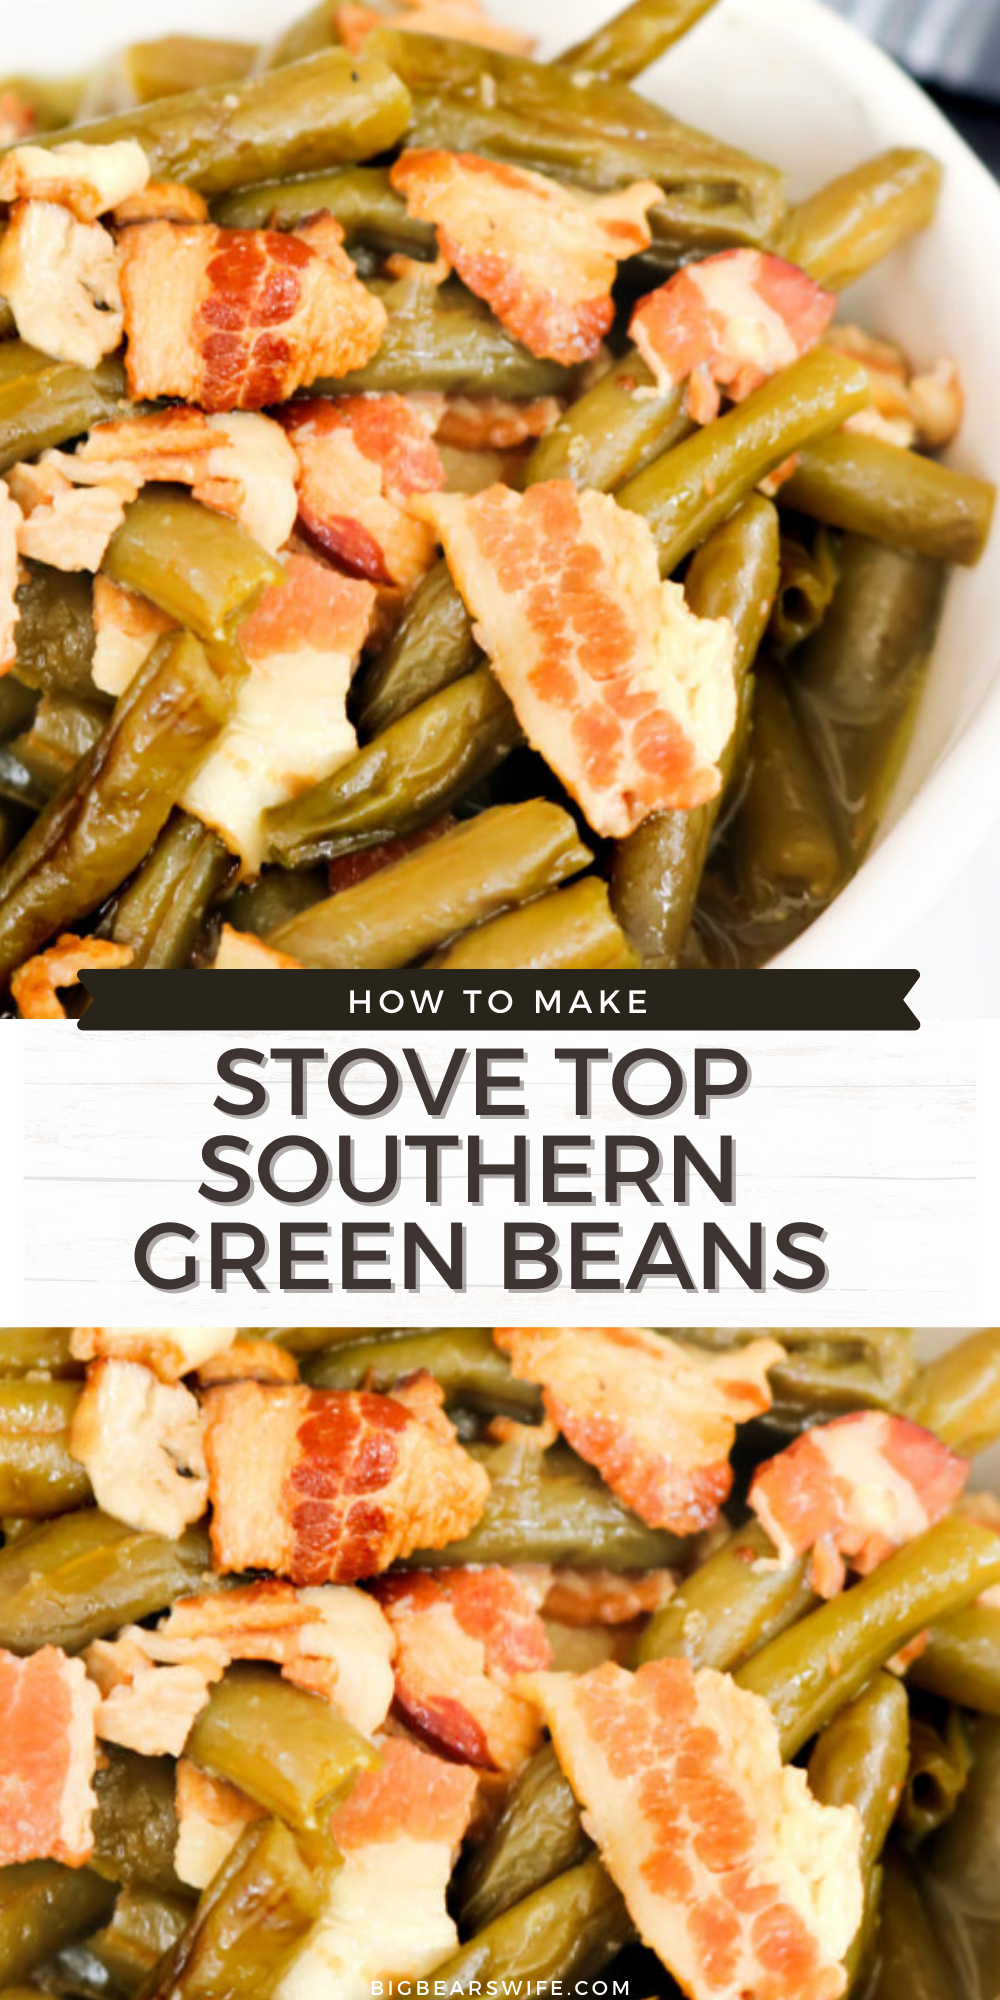 Stove Top Southern Green Beans - Stove Top Southern Green Beans are amazing and super easy to make! They're simmered all day long to create the most flavorful green beans ever!@bigbearswife via @bigbearswife